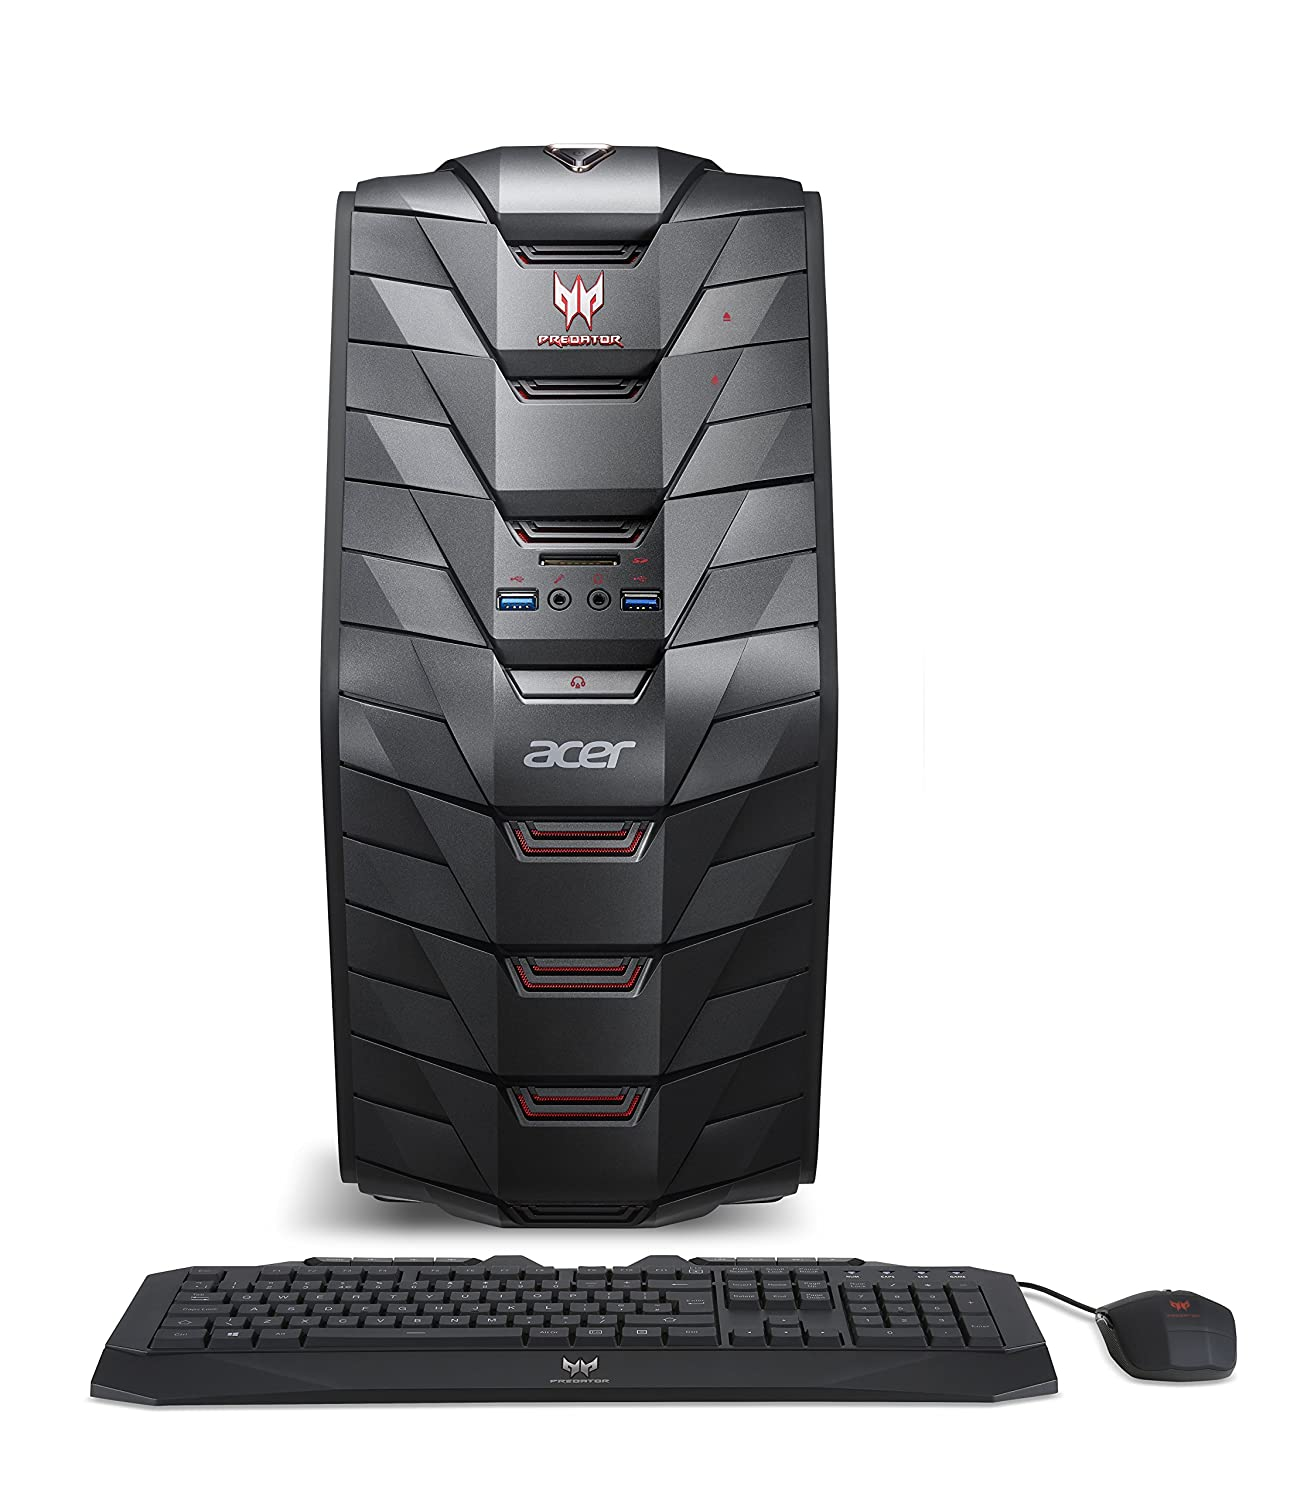 Best Desktops 2020.10 Best Gaming Desktop Computers Under 1000 Dollars 2019